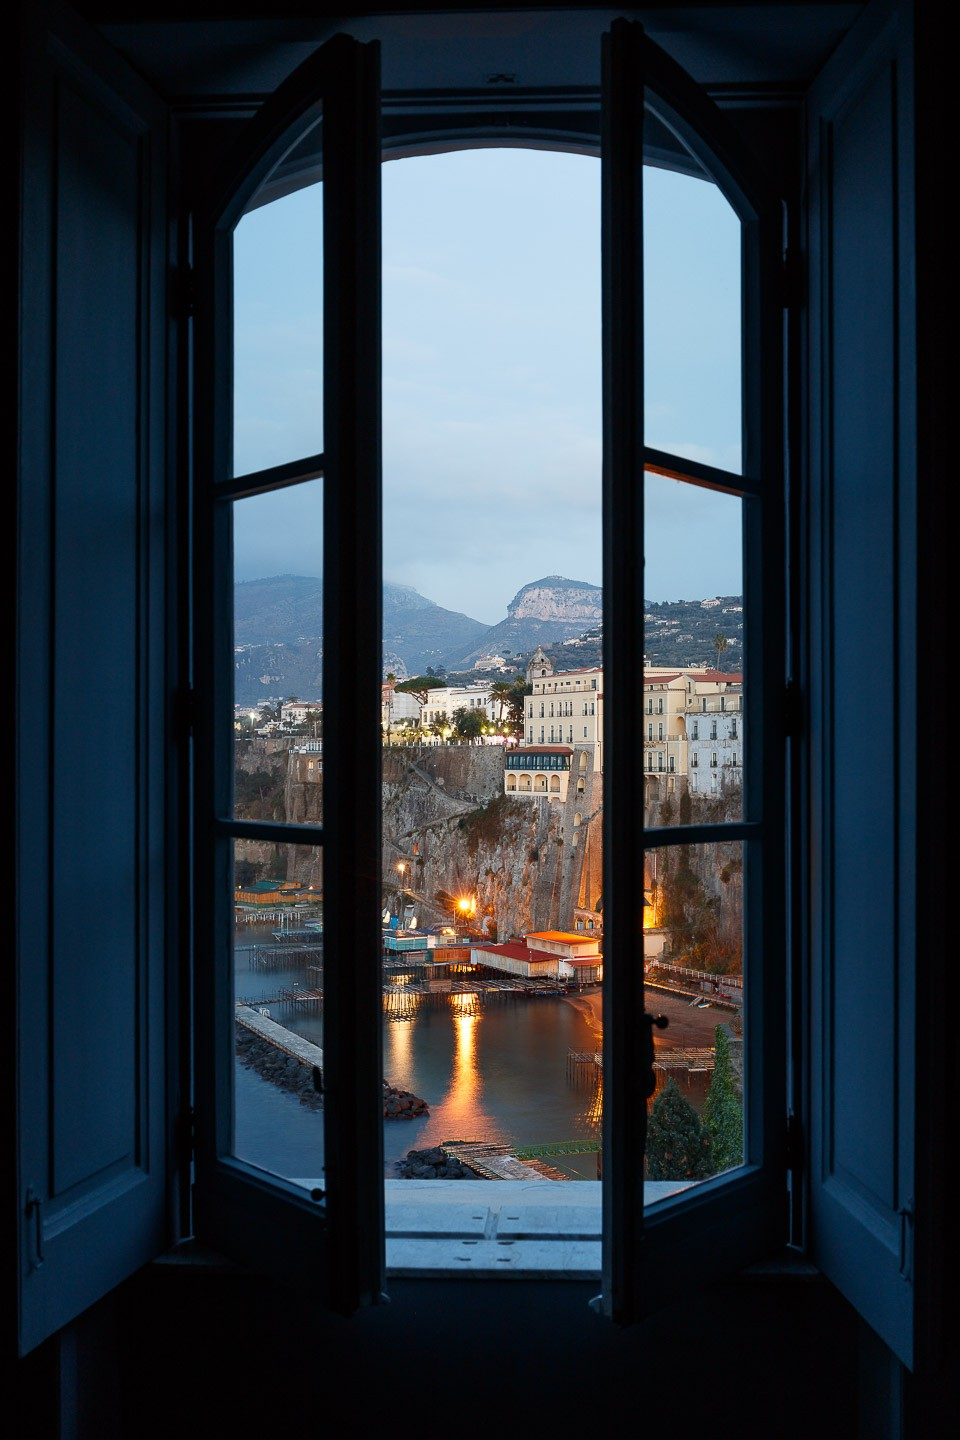 Villa Astor luxury property available for exclusive rent rental destination weddings event Italy Blue Suite best interiors services accommodationview Bay of Naples bathroom window